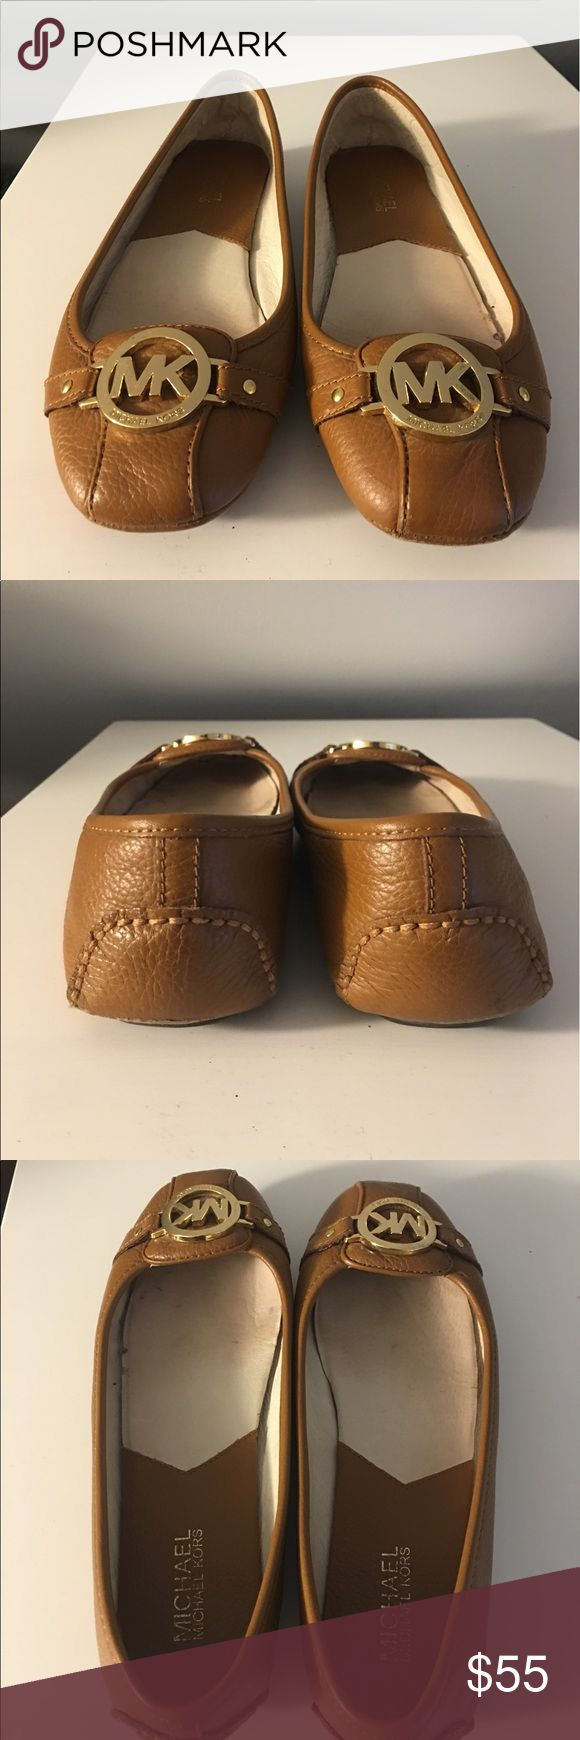 Michael Kors Luggage Fulton Flats Michael Kors Luggage Fulton Flats. Size 8.5. Worn twice. Great condition other than bottom sole is scufffed...cannot see when wearing. Every pair of mine have done this...see picture 4. MICHAEL Michael Kors Shoes Flats & Loafers